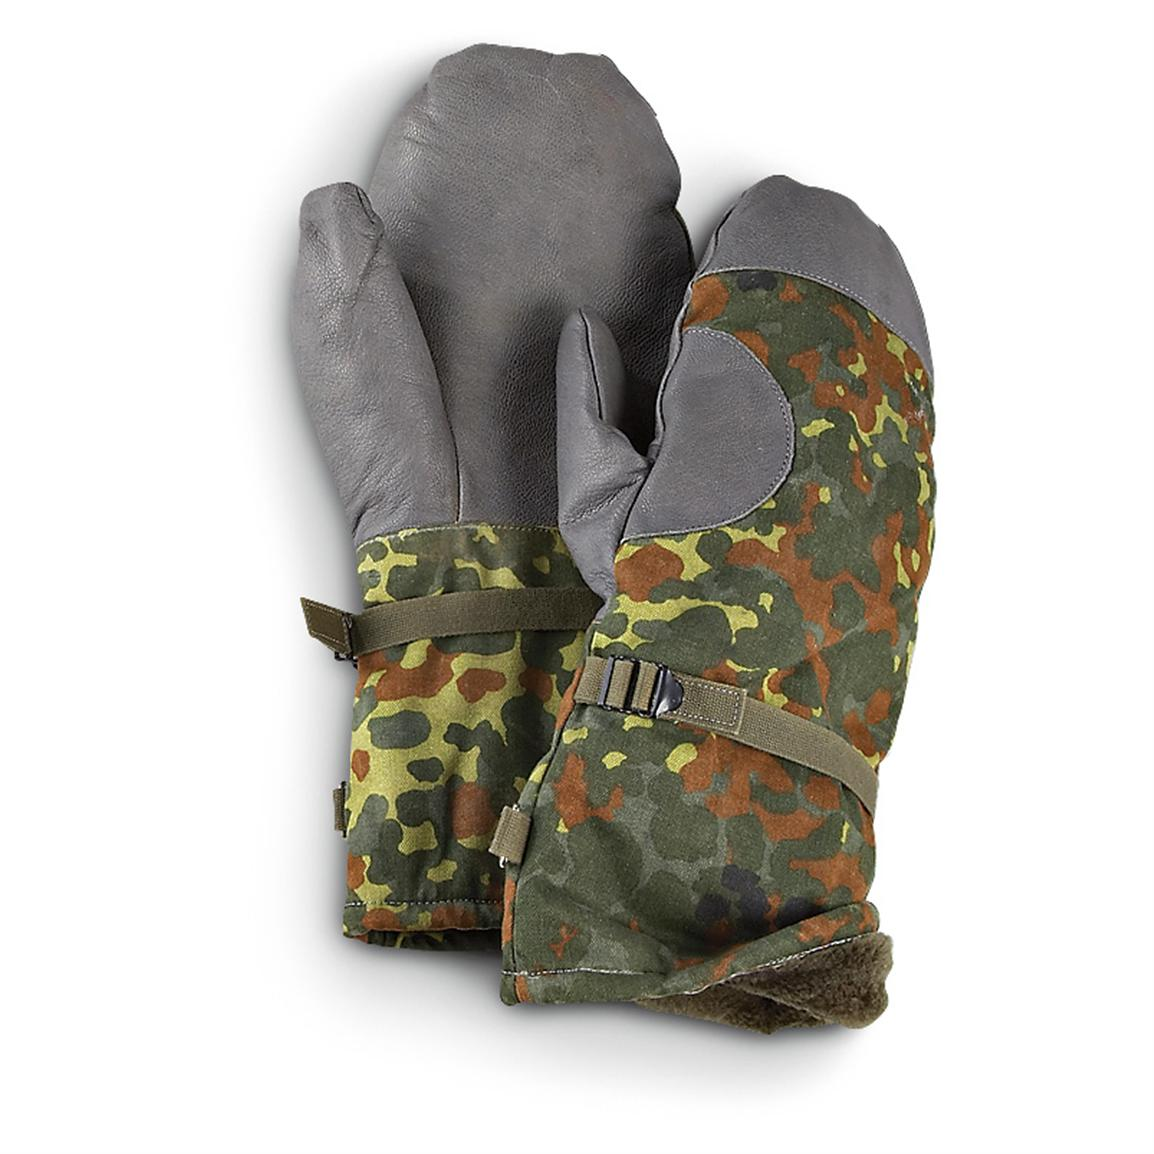 German Military Surplus Insulated Camo Mittens, 2 Pairs, Used